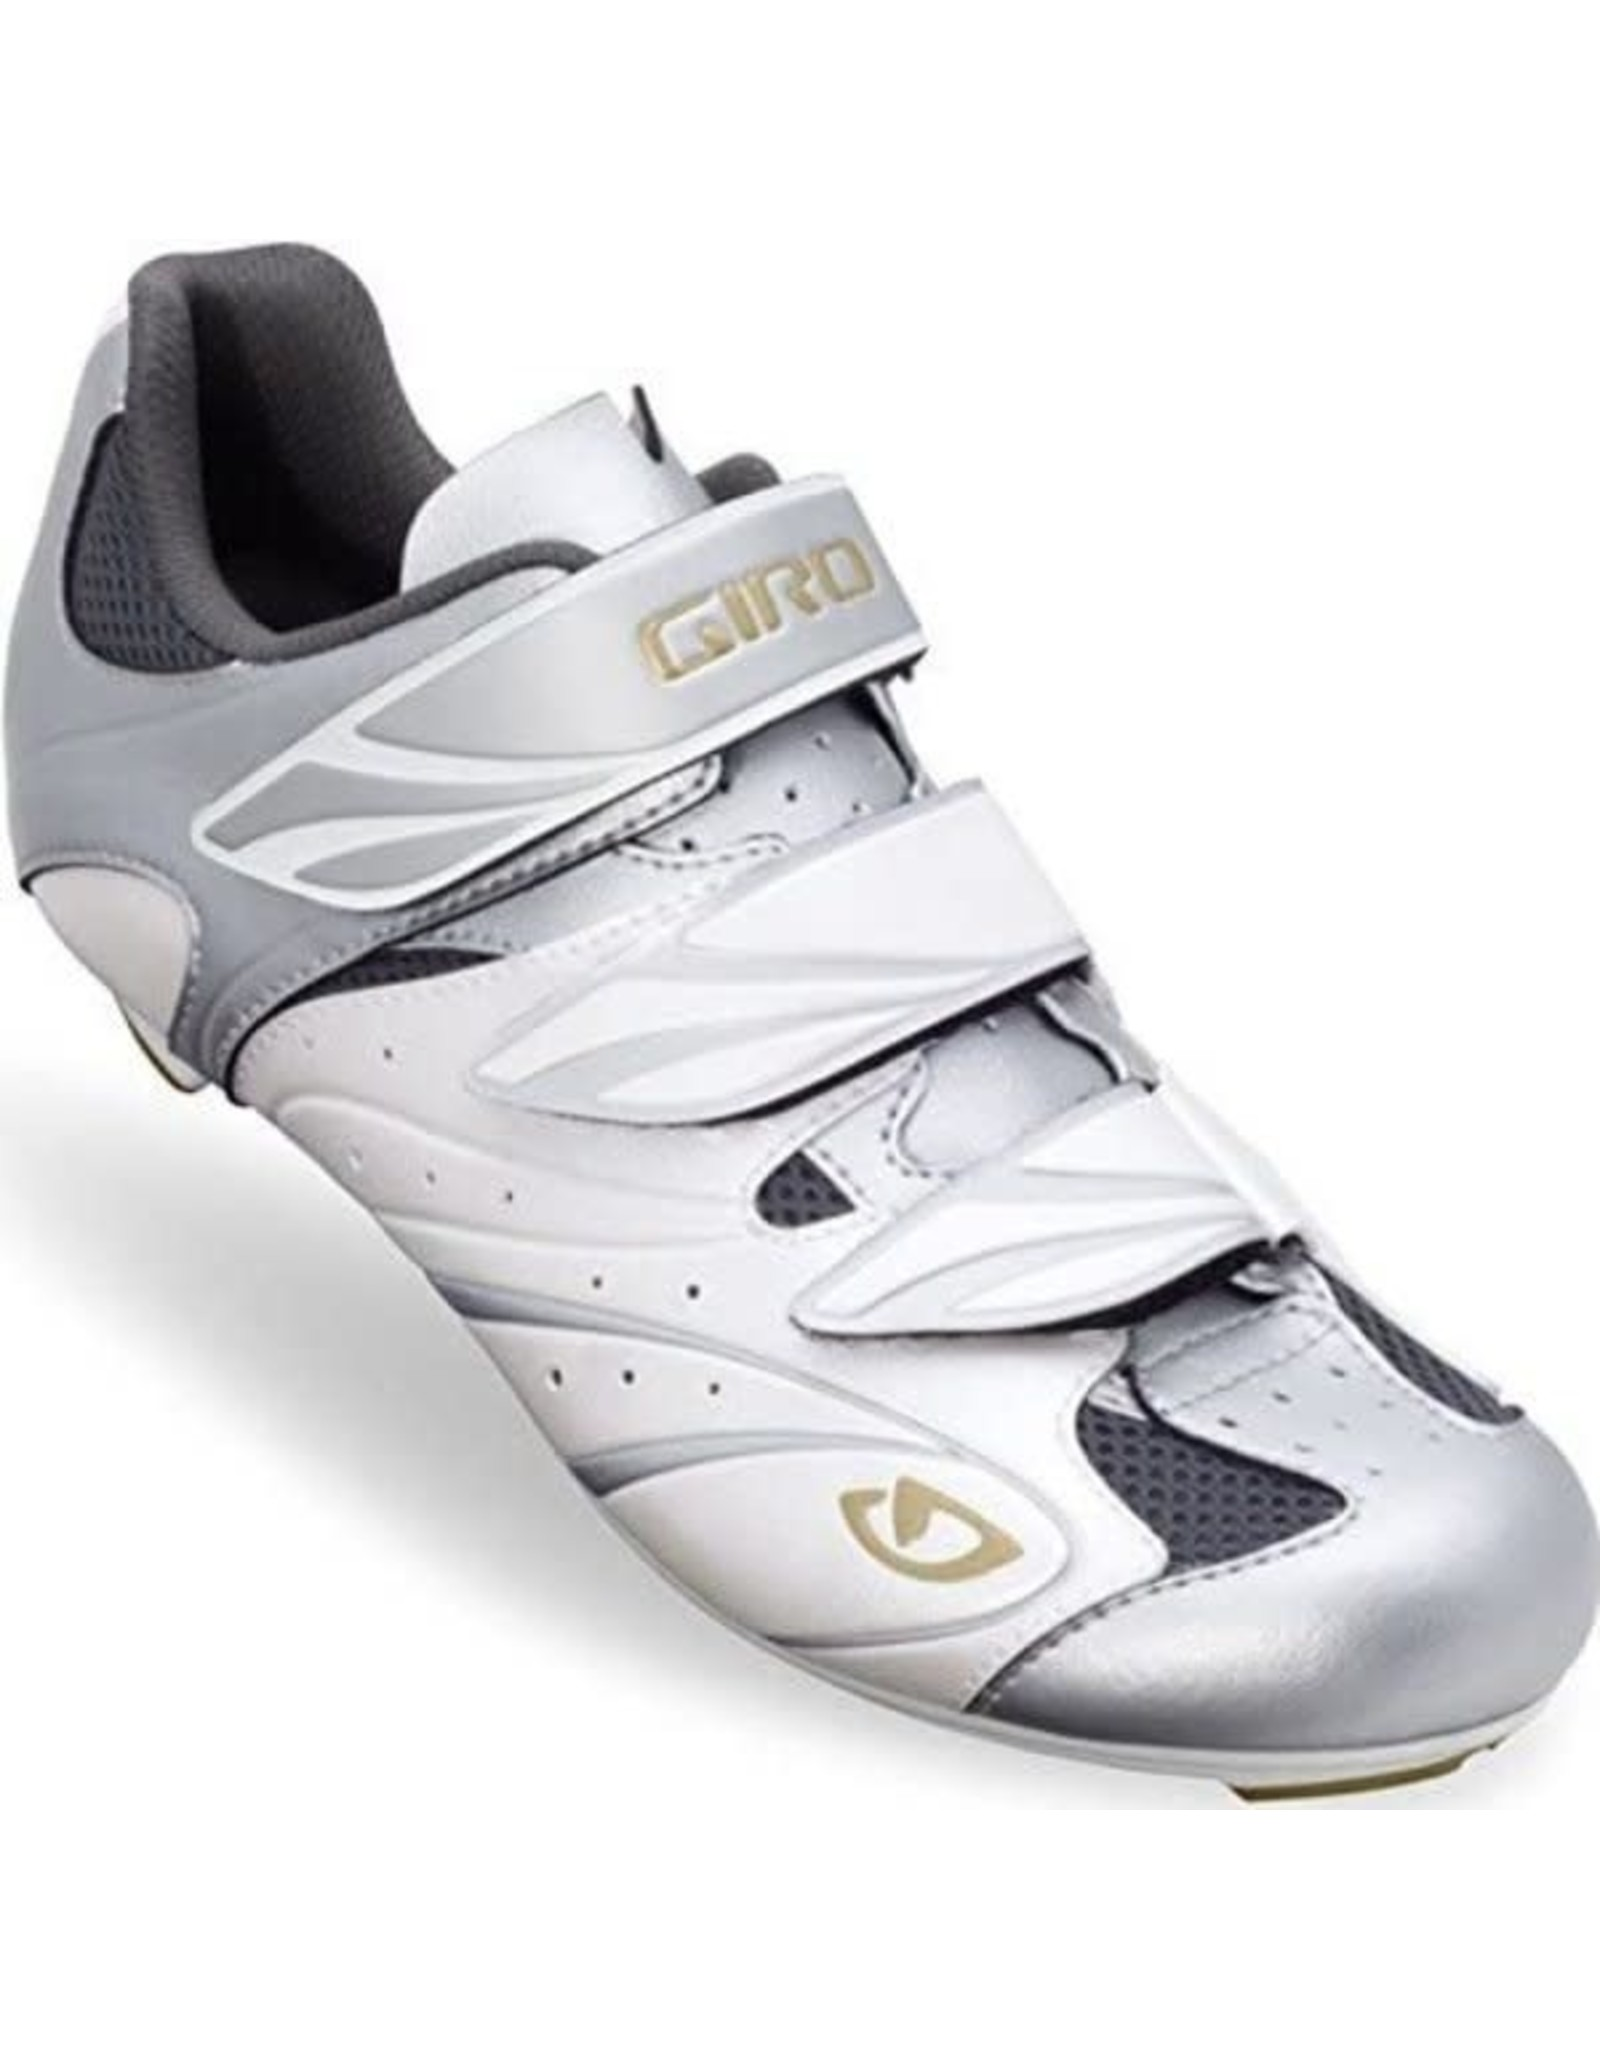 Giro Sante Womens Cycling Shoes (New, Old Stock) WHITE/SILVER/GOLD 37